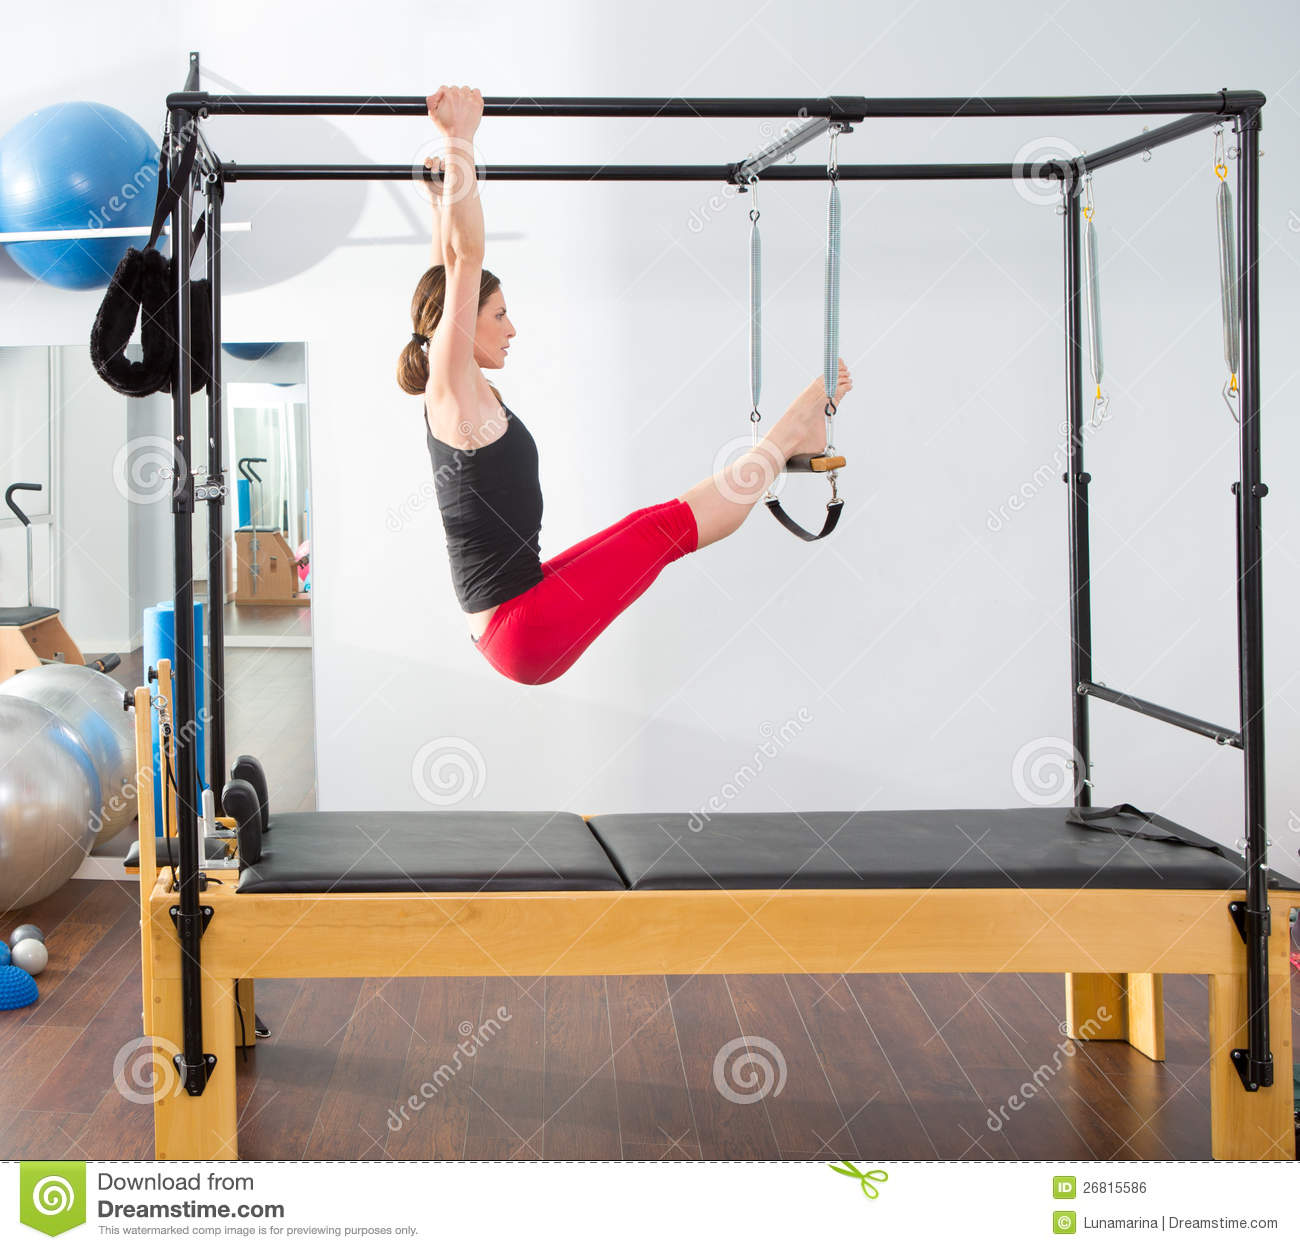 Woman Pilates Chair Exercises Fitness Stock Photo: Aerobics Pilates Instructor Woman In Cadillac Stock Photo